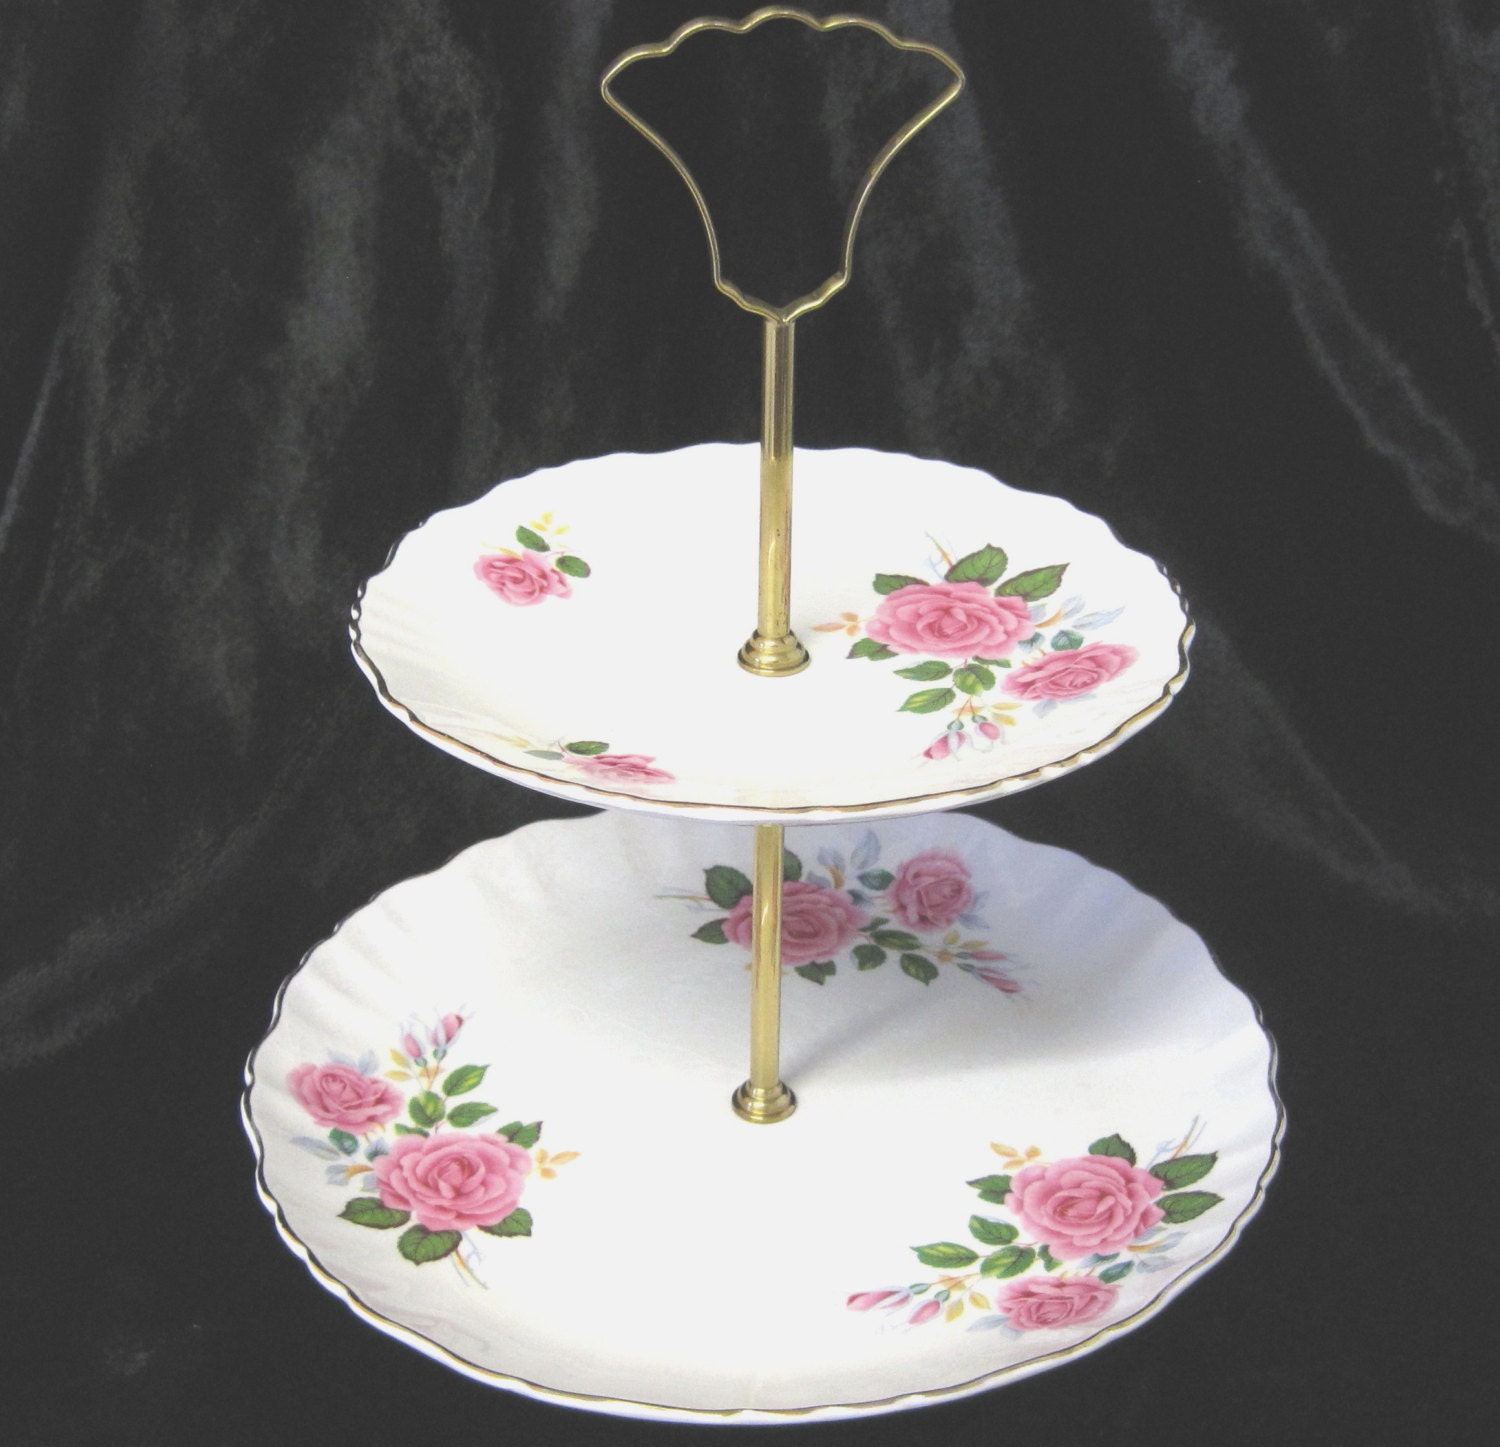 Vintage Old Foley TwoTier Cake Stand, Pink Roses, Shabby Chic - TheWhistlingMan